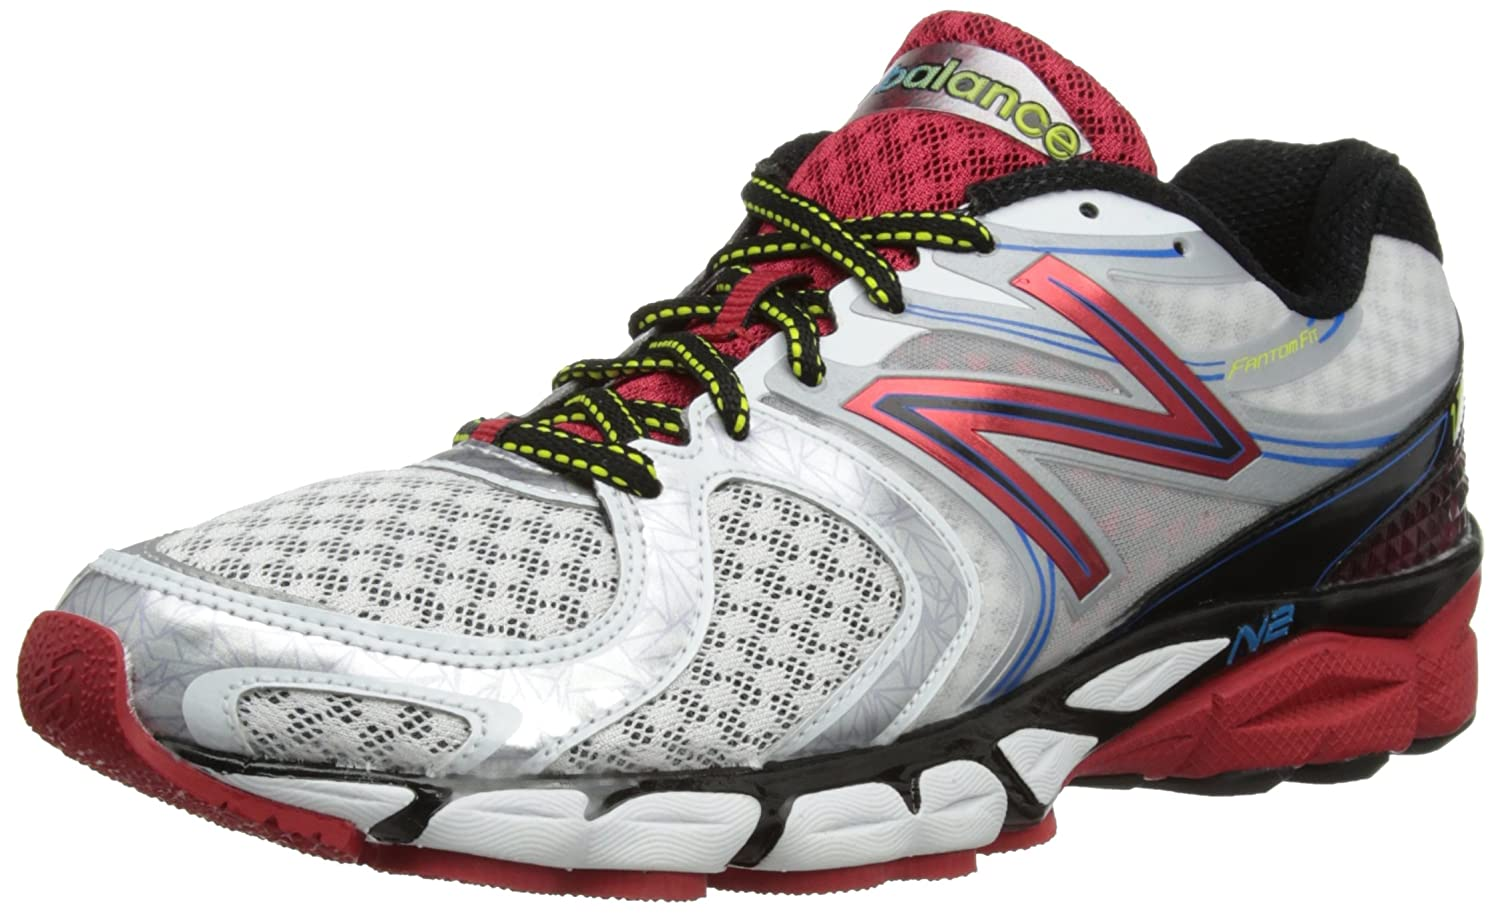 new balance shoes for men white. new balance shoes for men white